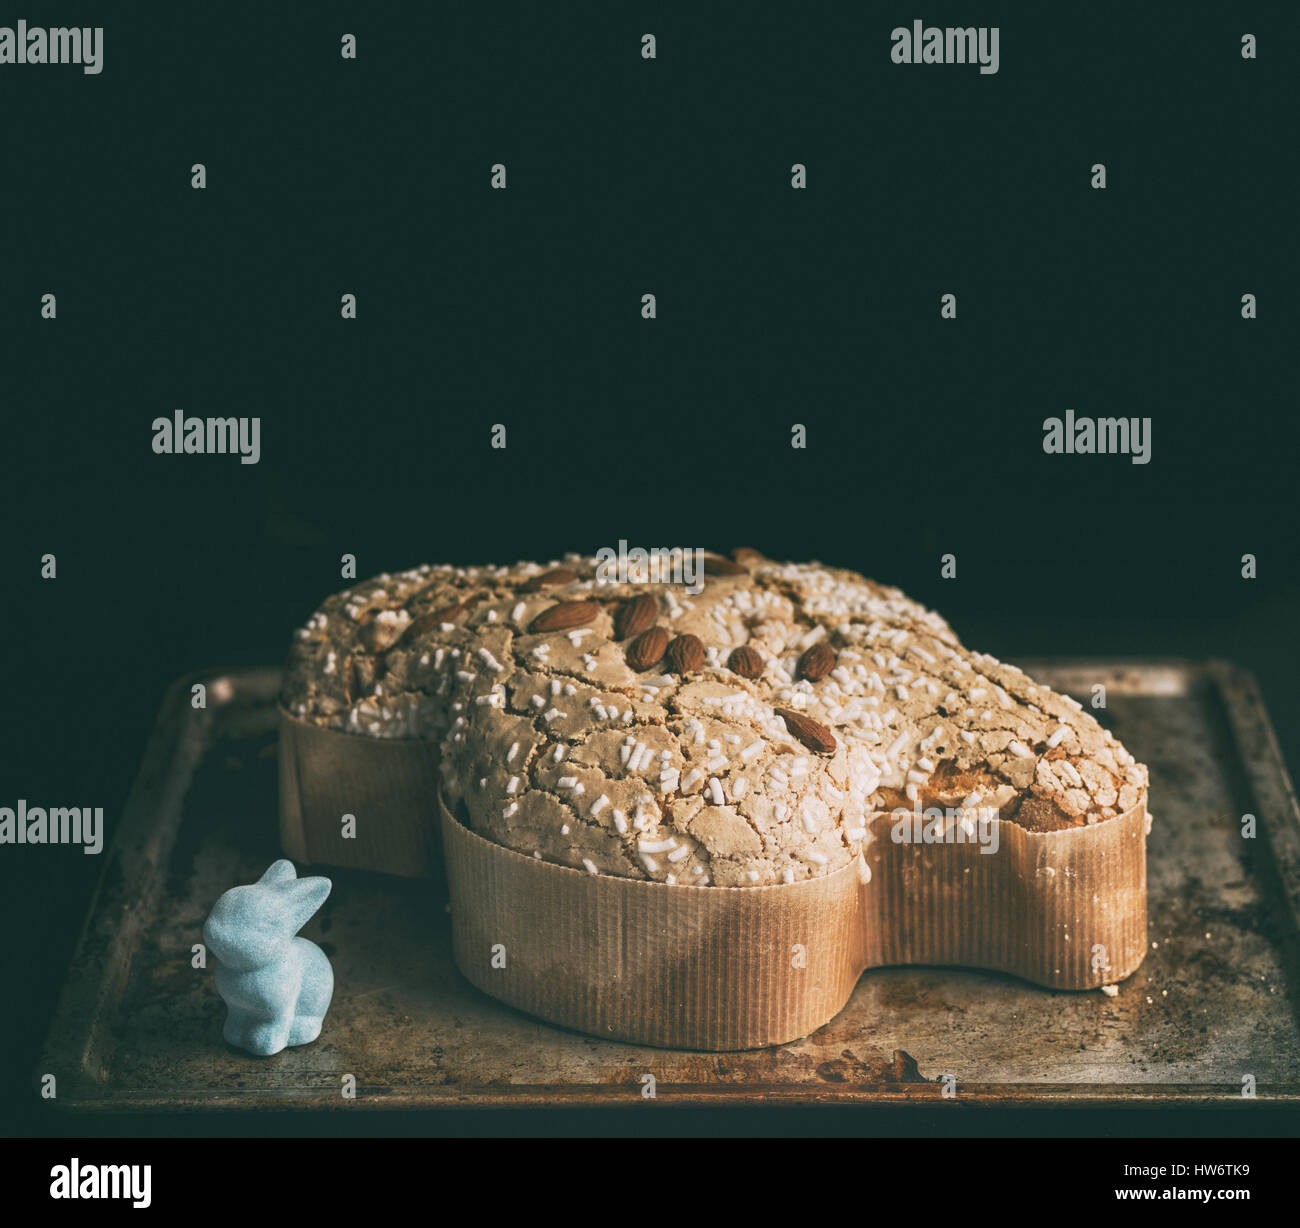 Colomba italian easter cake over a dark wooden table with some props - Stock Image